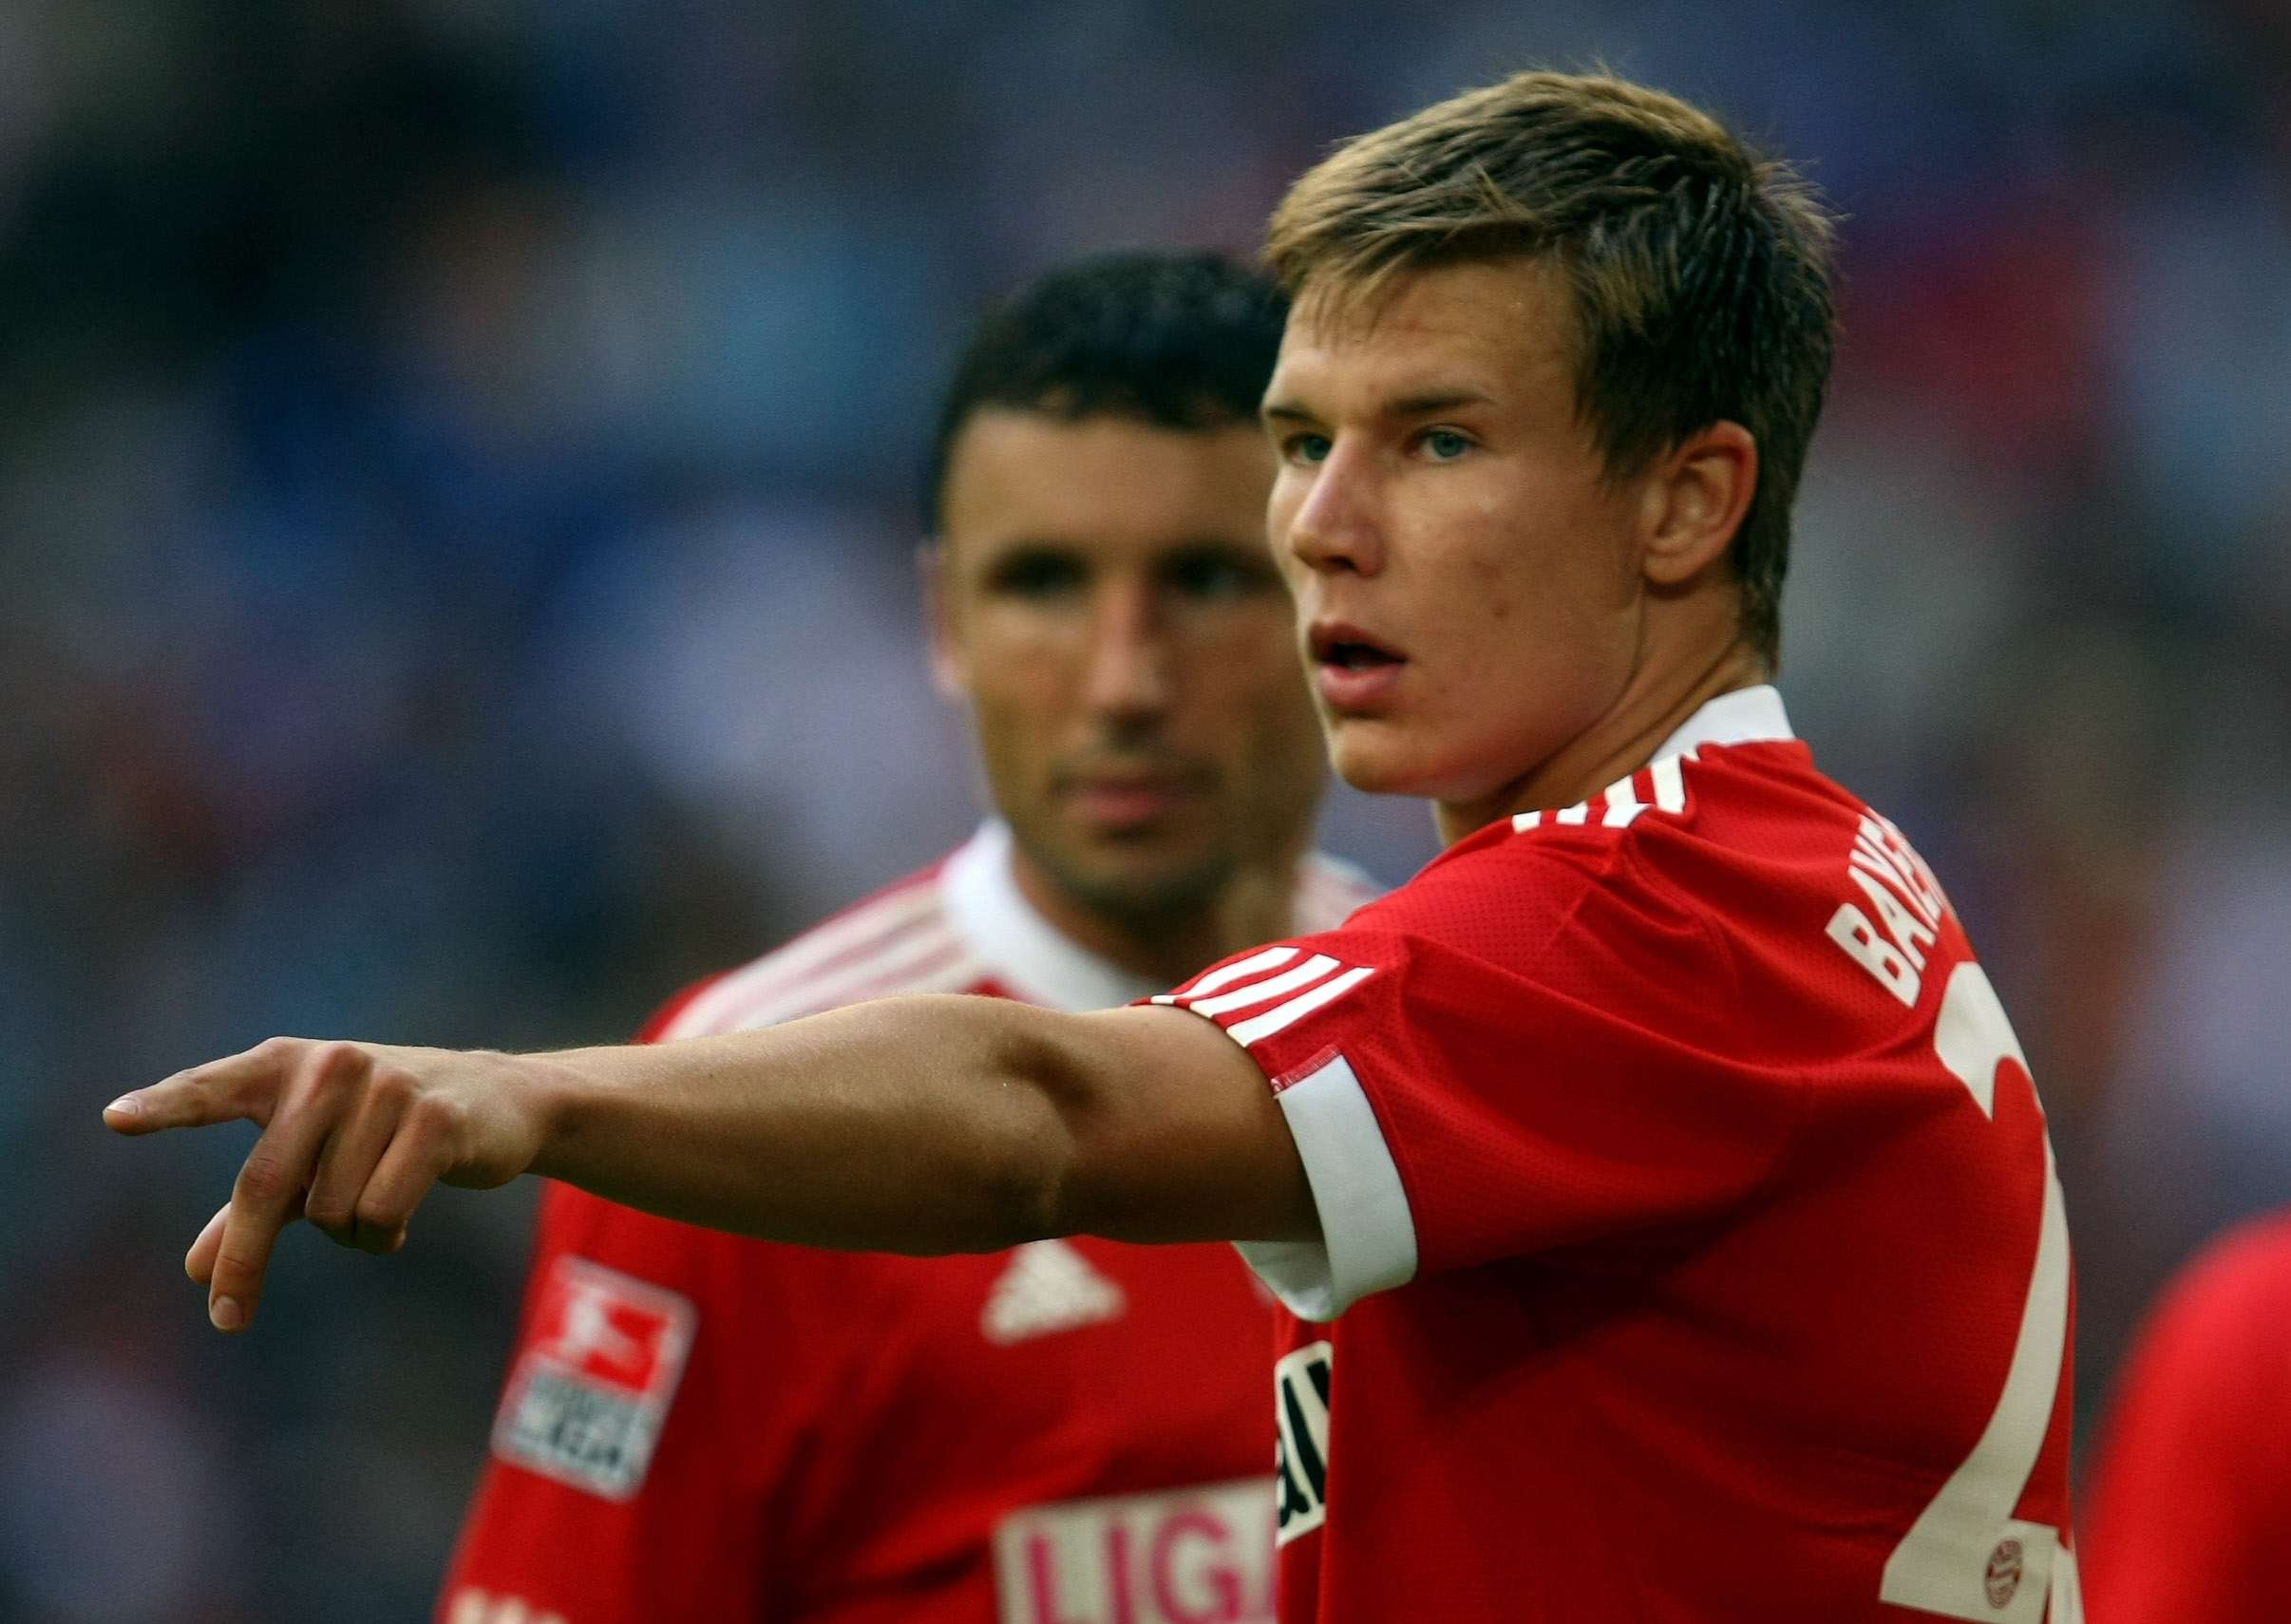 Bayern defender Badstuber back from injury